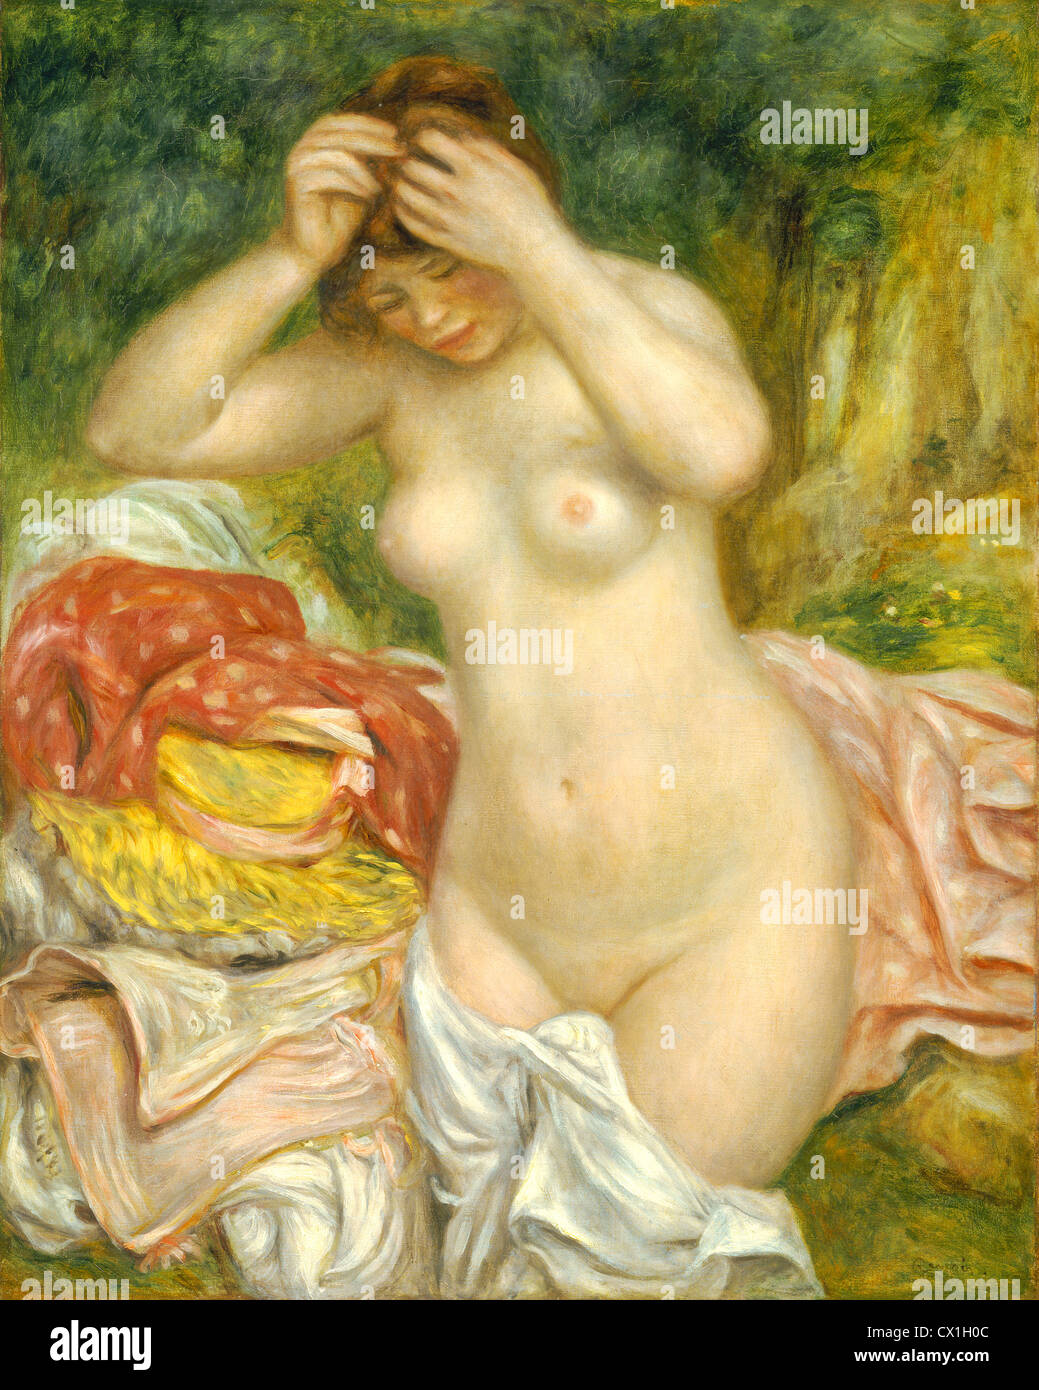 Auguste Renoir (French, 1841 - 1919 ), Bather Arranging Her Hair, 1893, oil on canvas - Stock Image